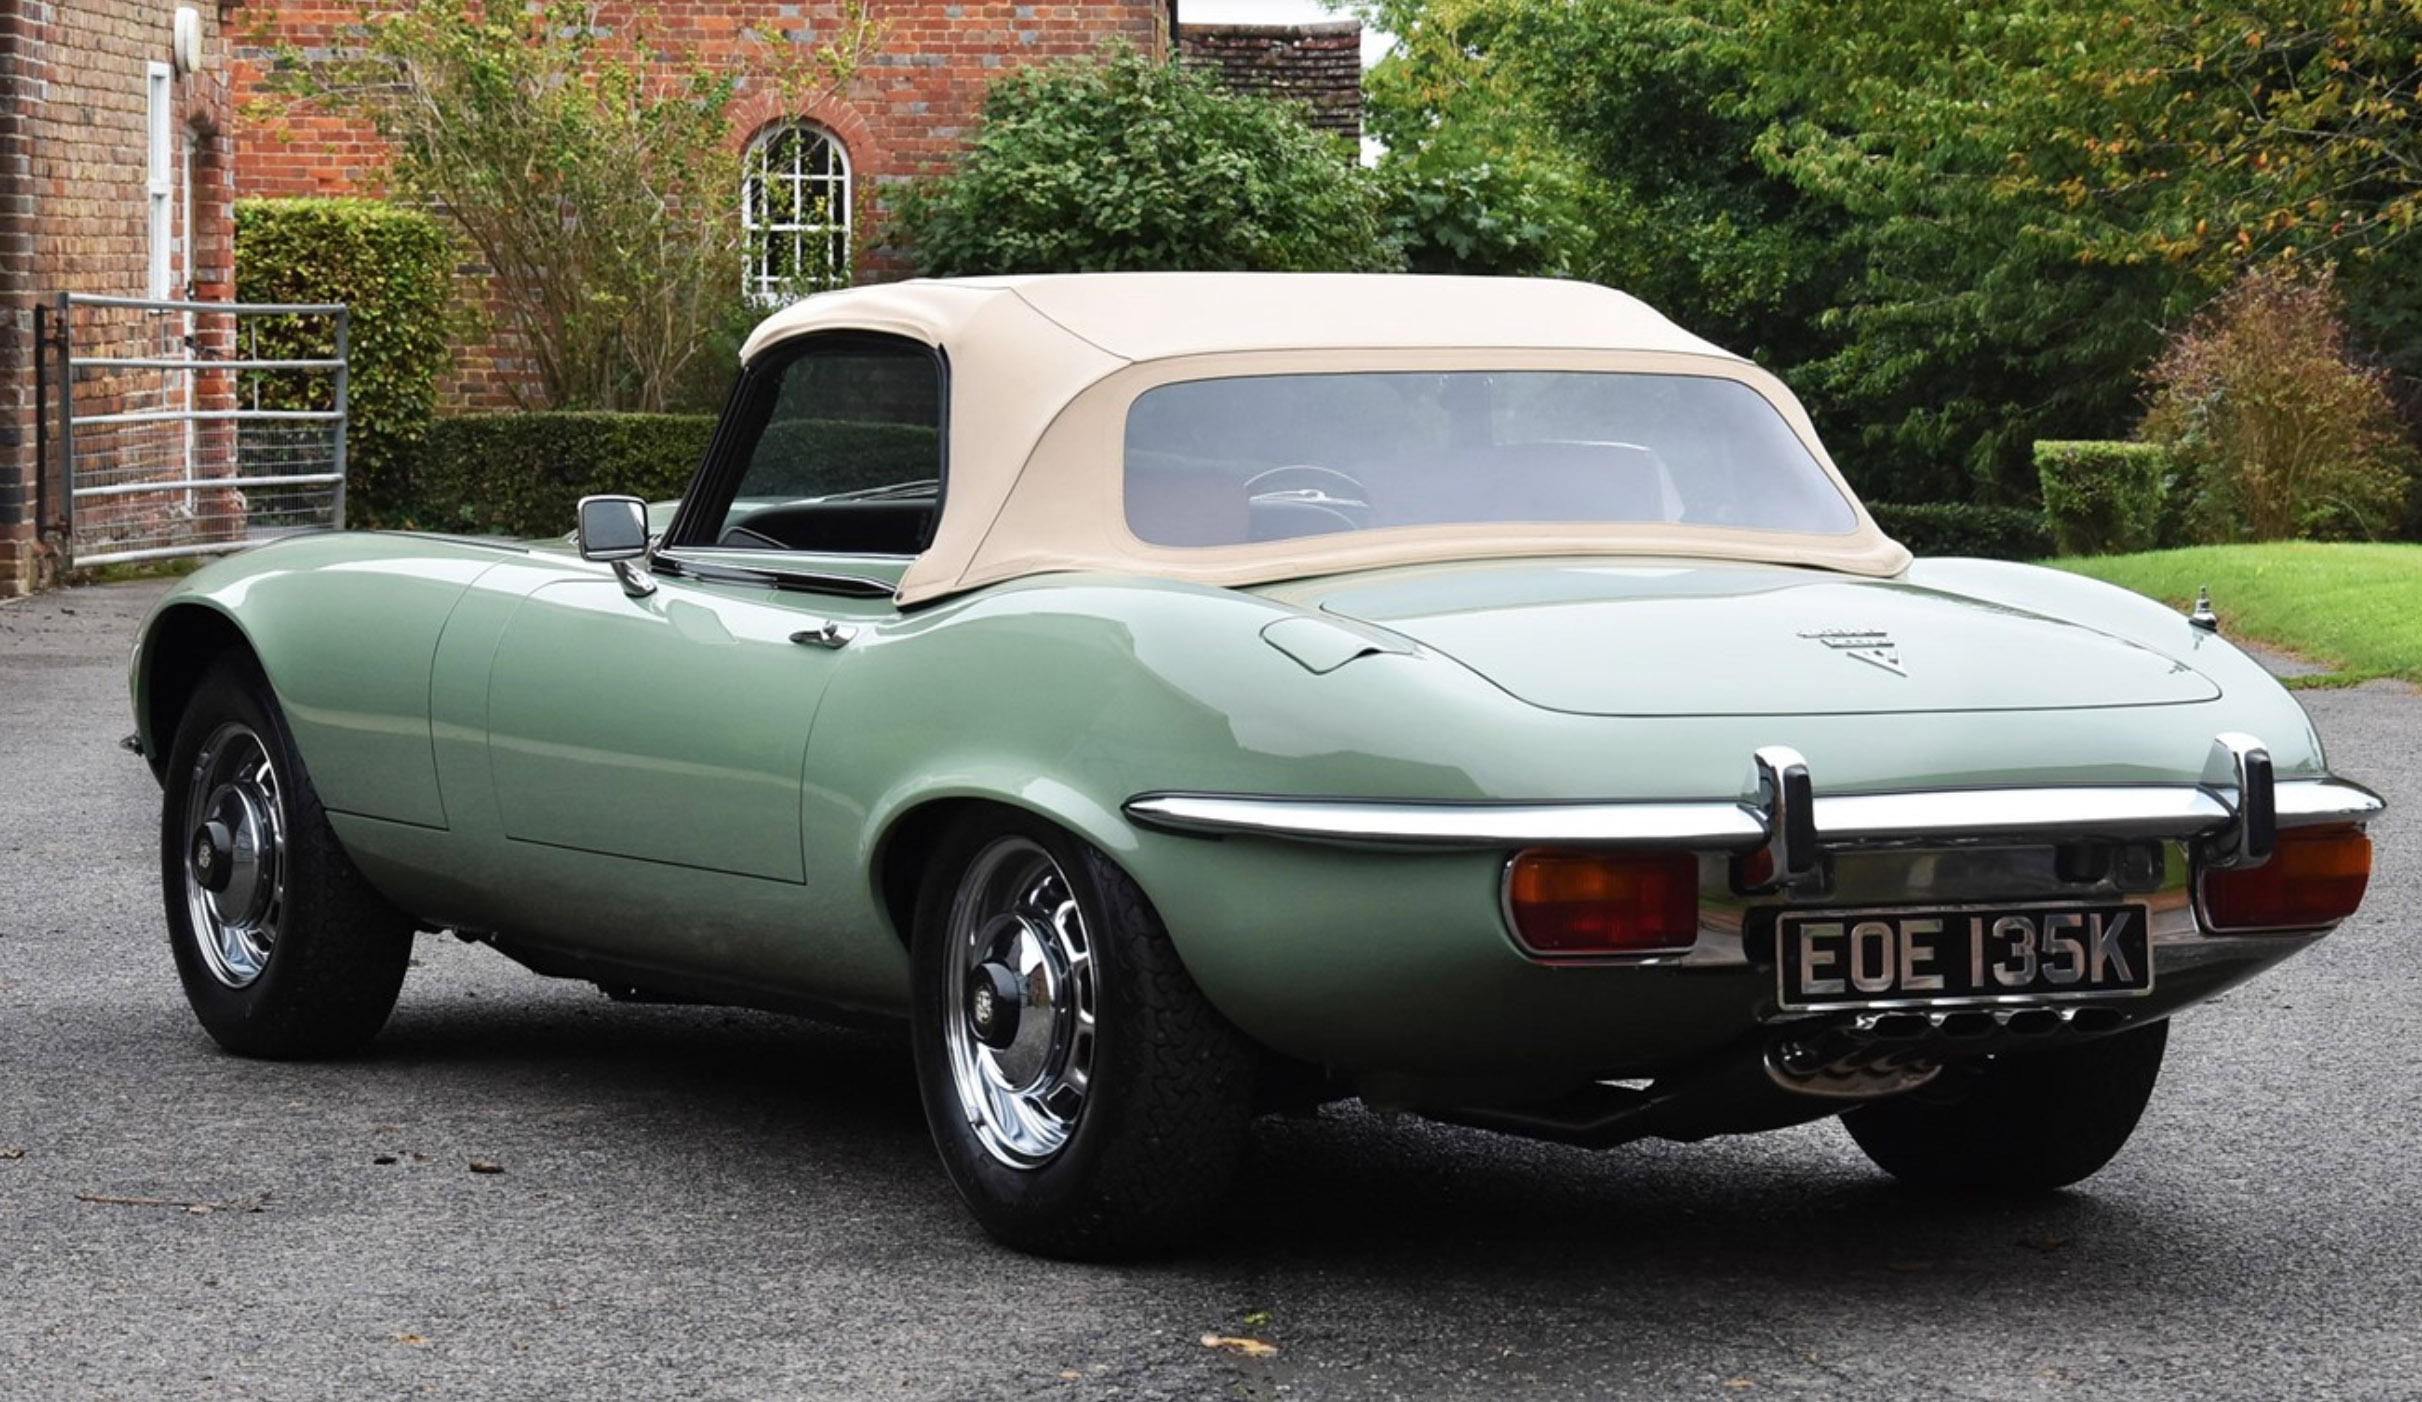 Jaguar E-Type formerly owned by Kevin Keegan has been restored